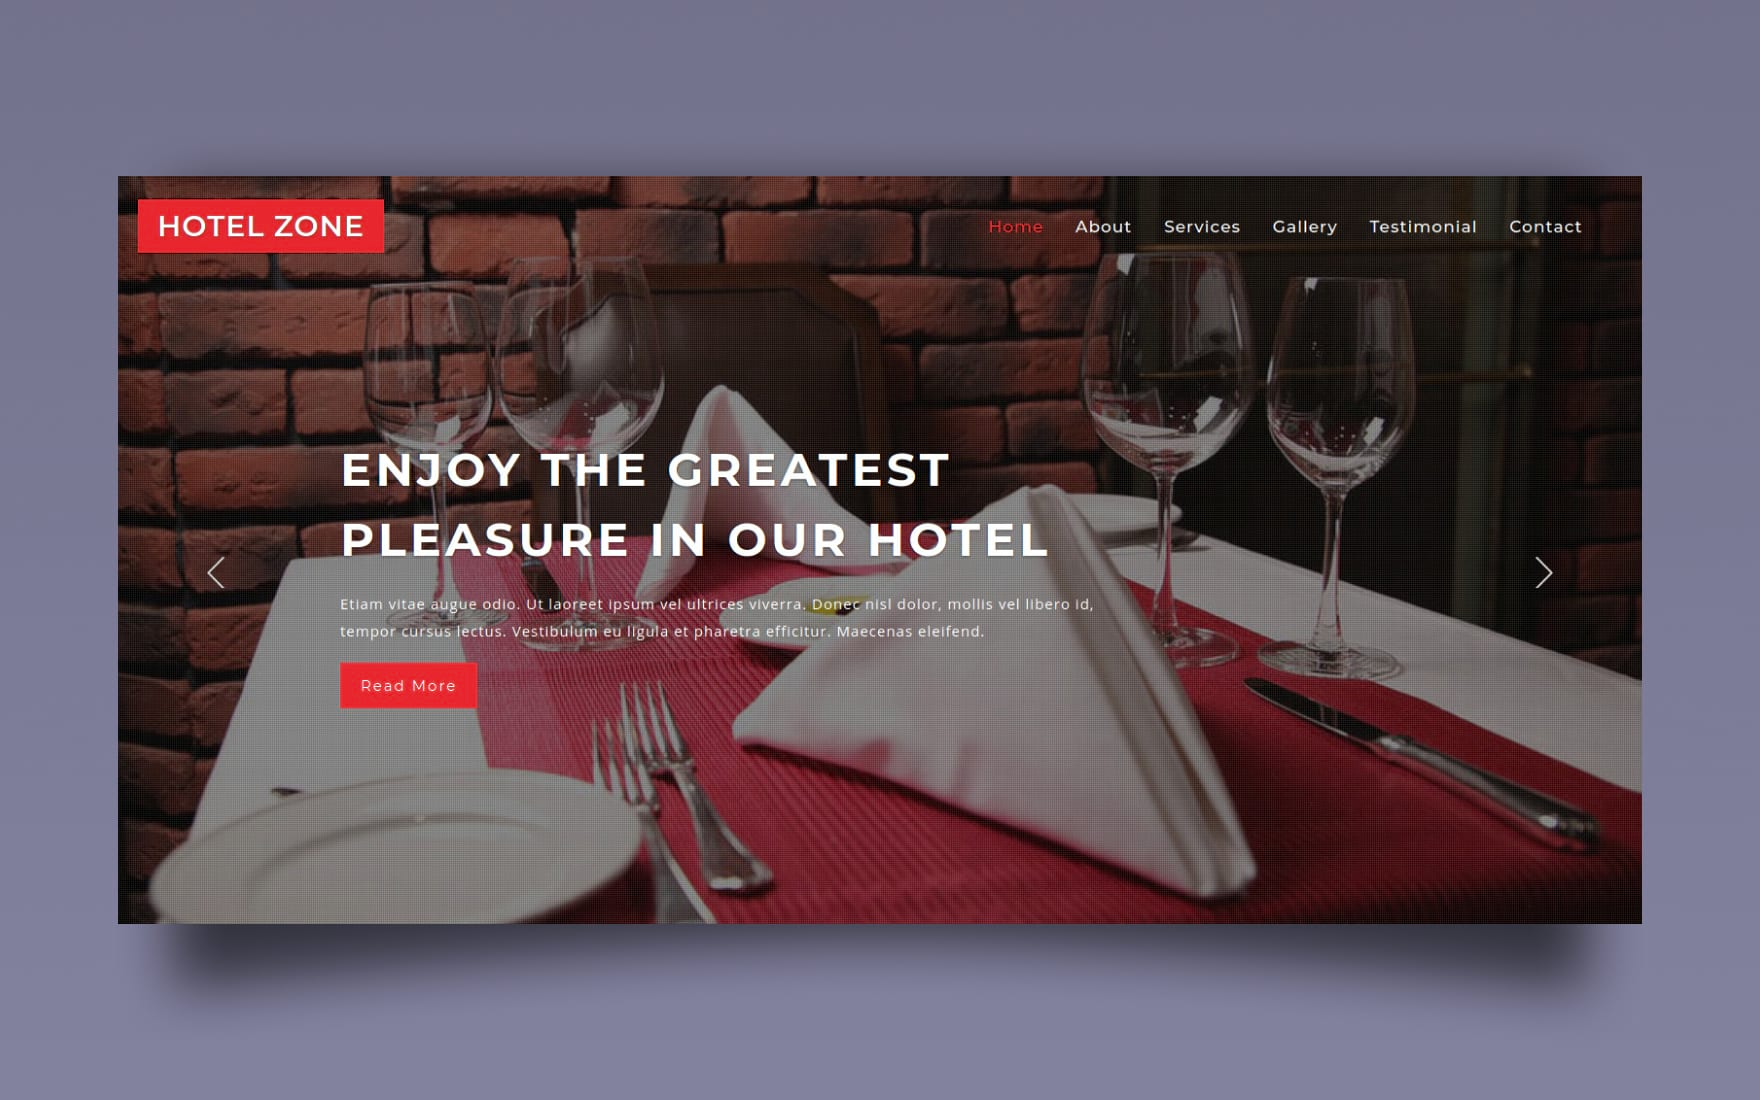 Hotel Zone a Hotel and Restaurant Category Bootstrap Responsive Web Template.